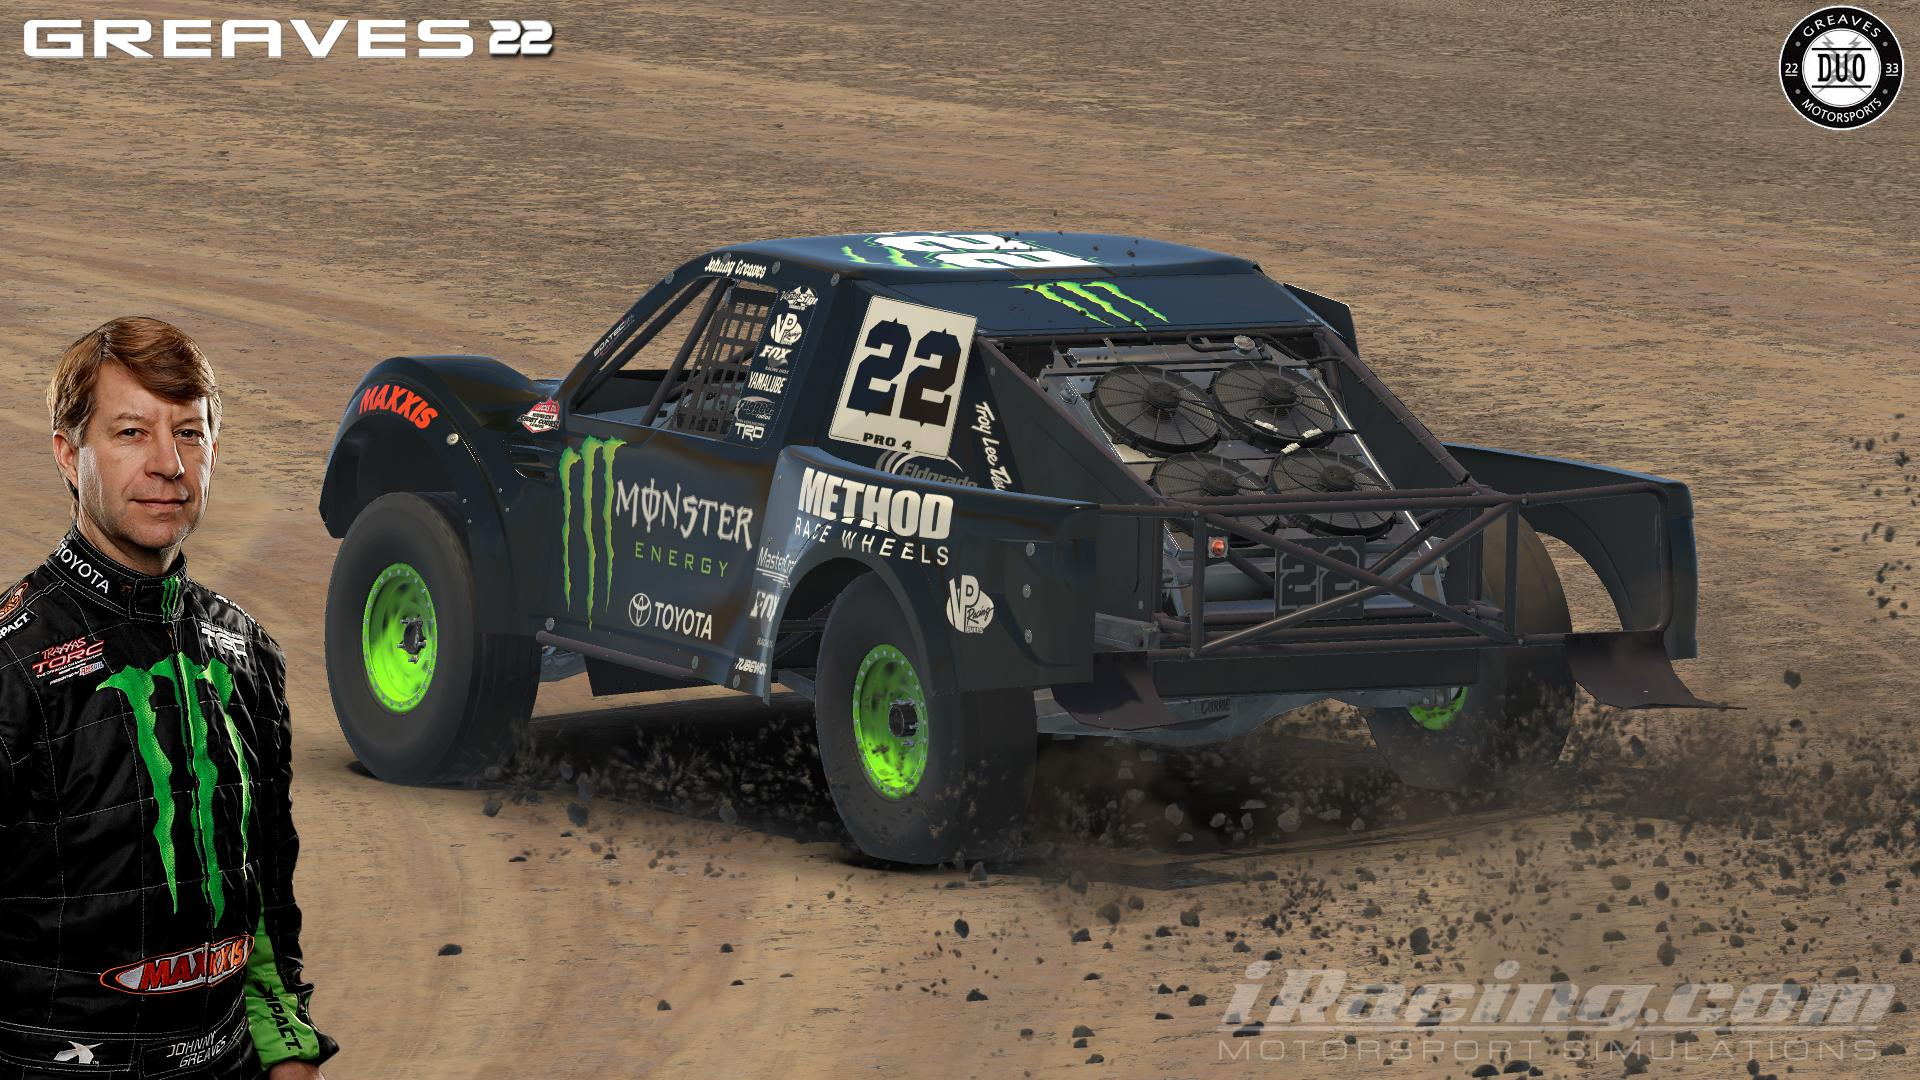 Johnny Greaves#22 Pro4 by Brian P. - Trading Paints